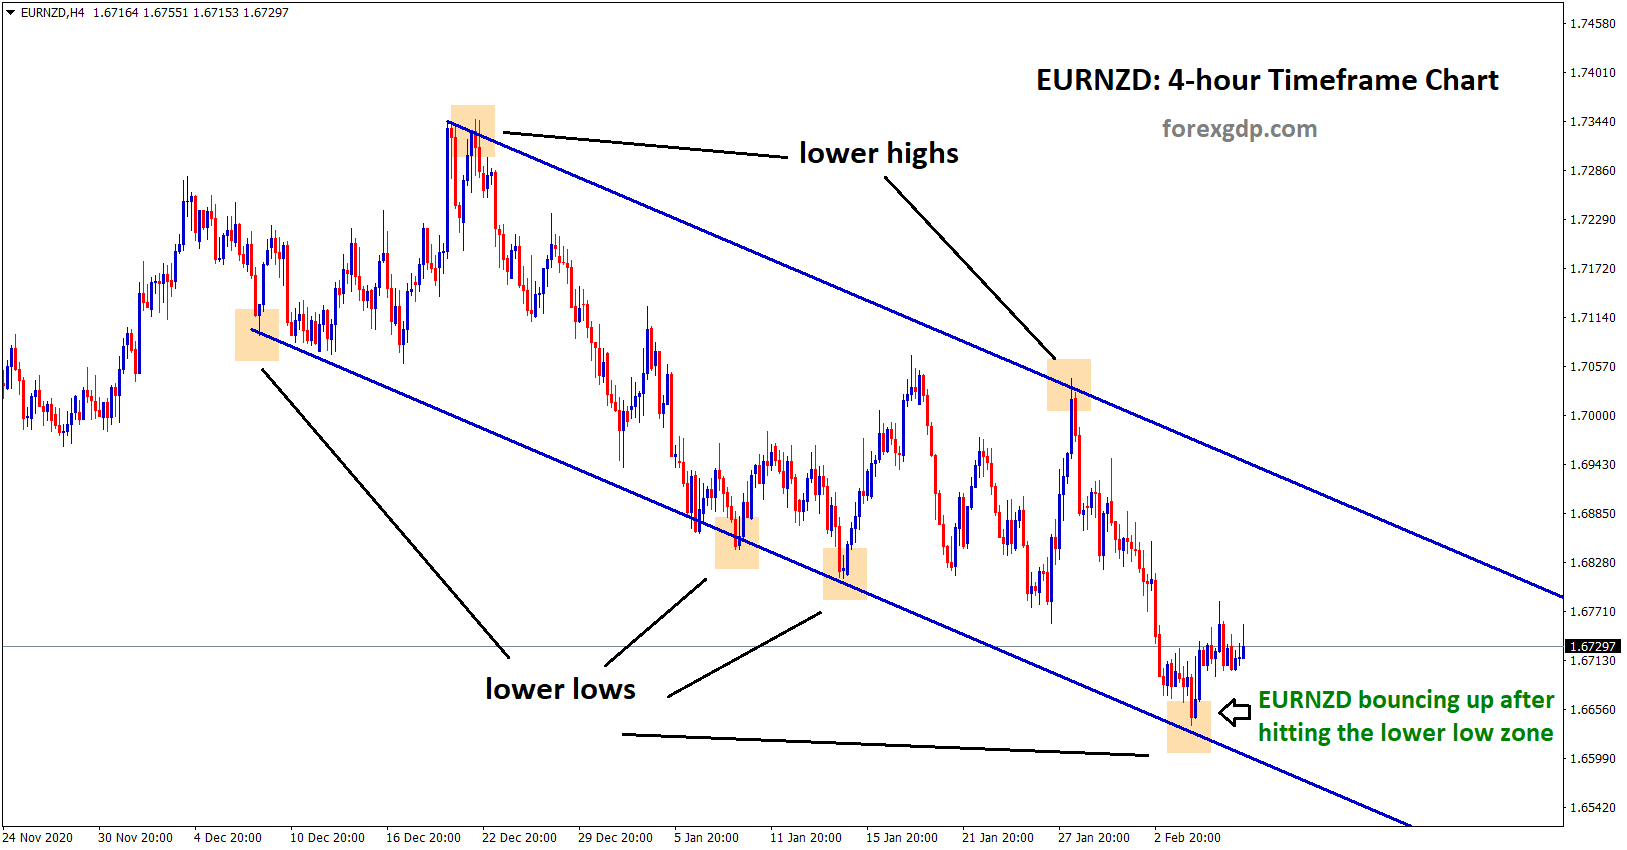 eurnzd bouncing up after hitting the lower low zone in 4hr chart